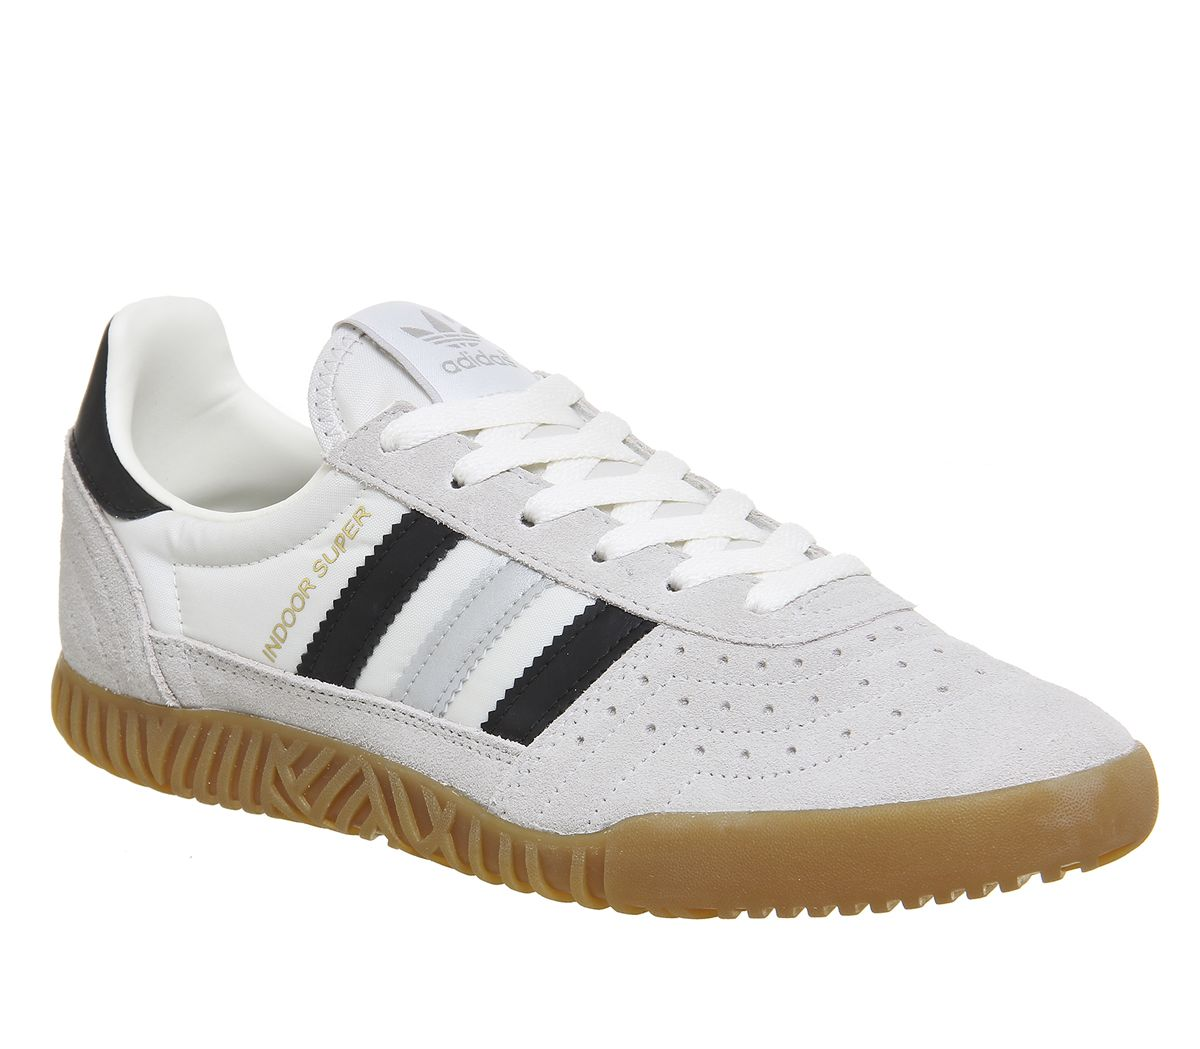 124a8cb87c12b8 adidas Indoor Super Trainers Vintage White Matte Silver - His trainers